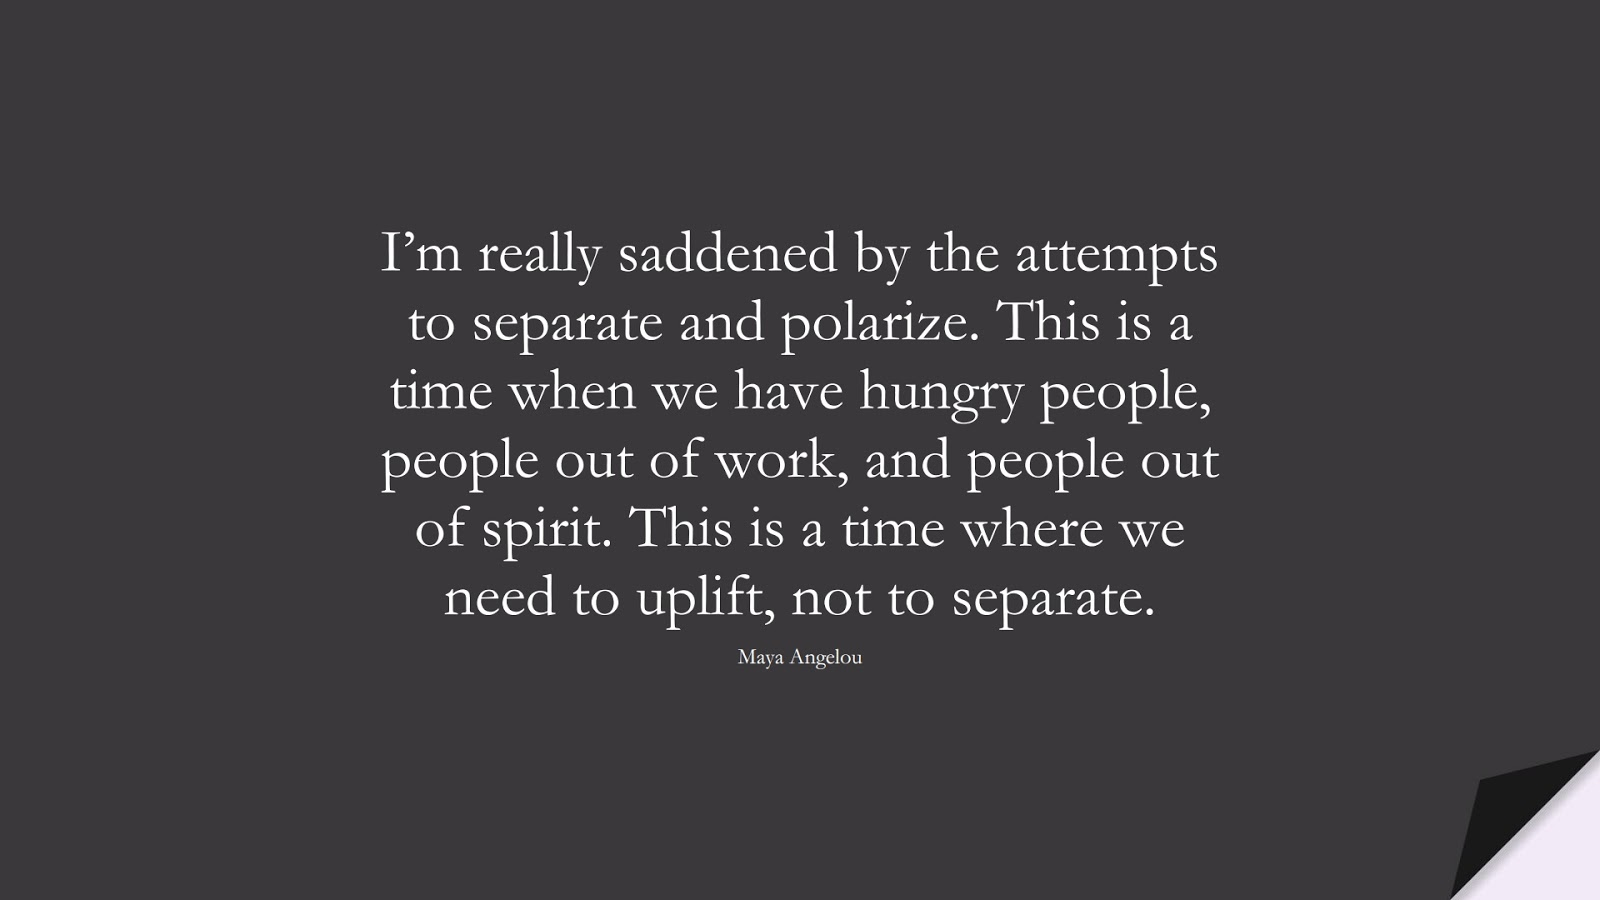 I'm really saddened by the attempts to separate and polarize. This is a time when we have hungry people, people out of work, and people out of spirit. This is a time where we need to uplift, not to separate. (Maya Angelou);  #MayaAngelouQuotes